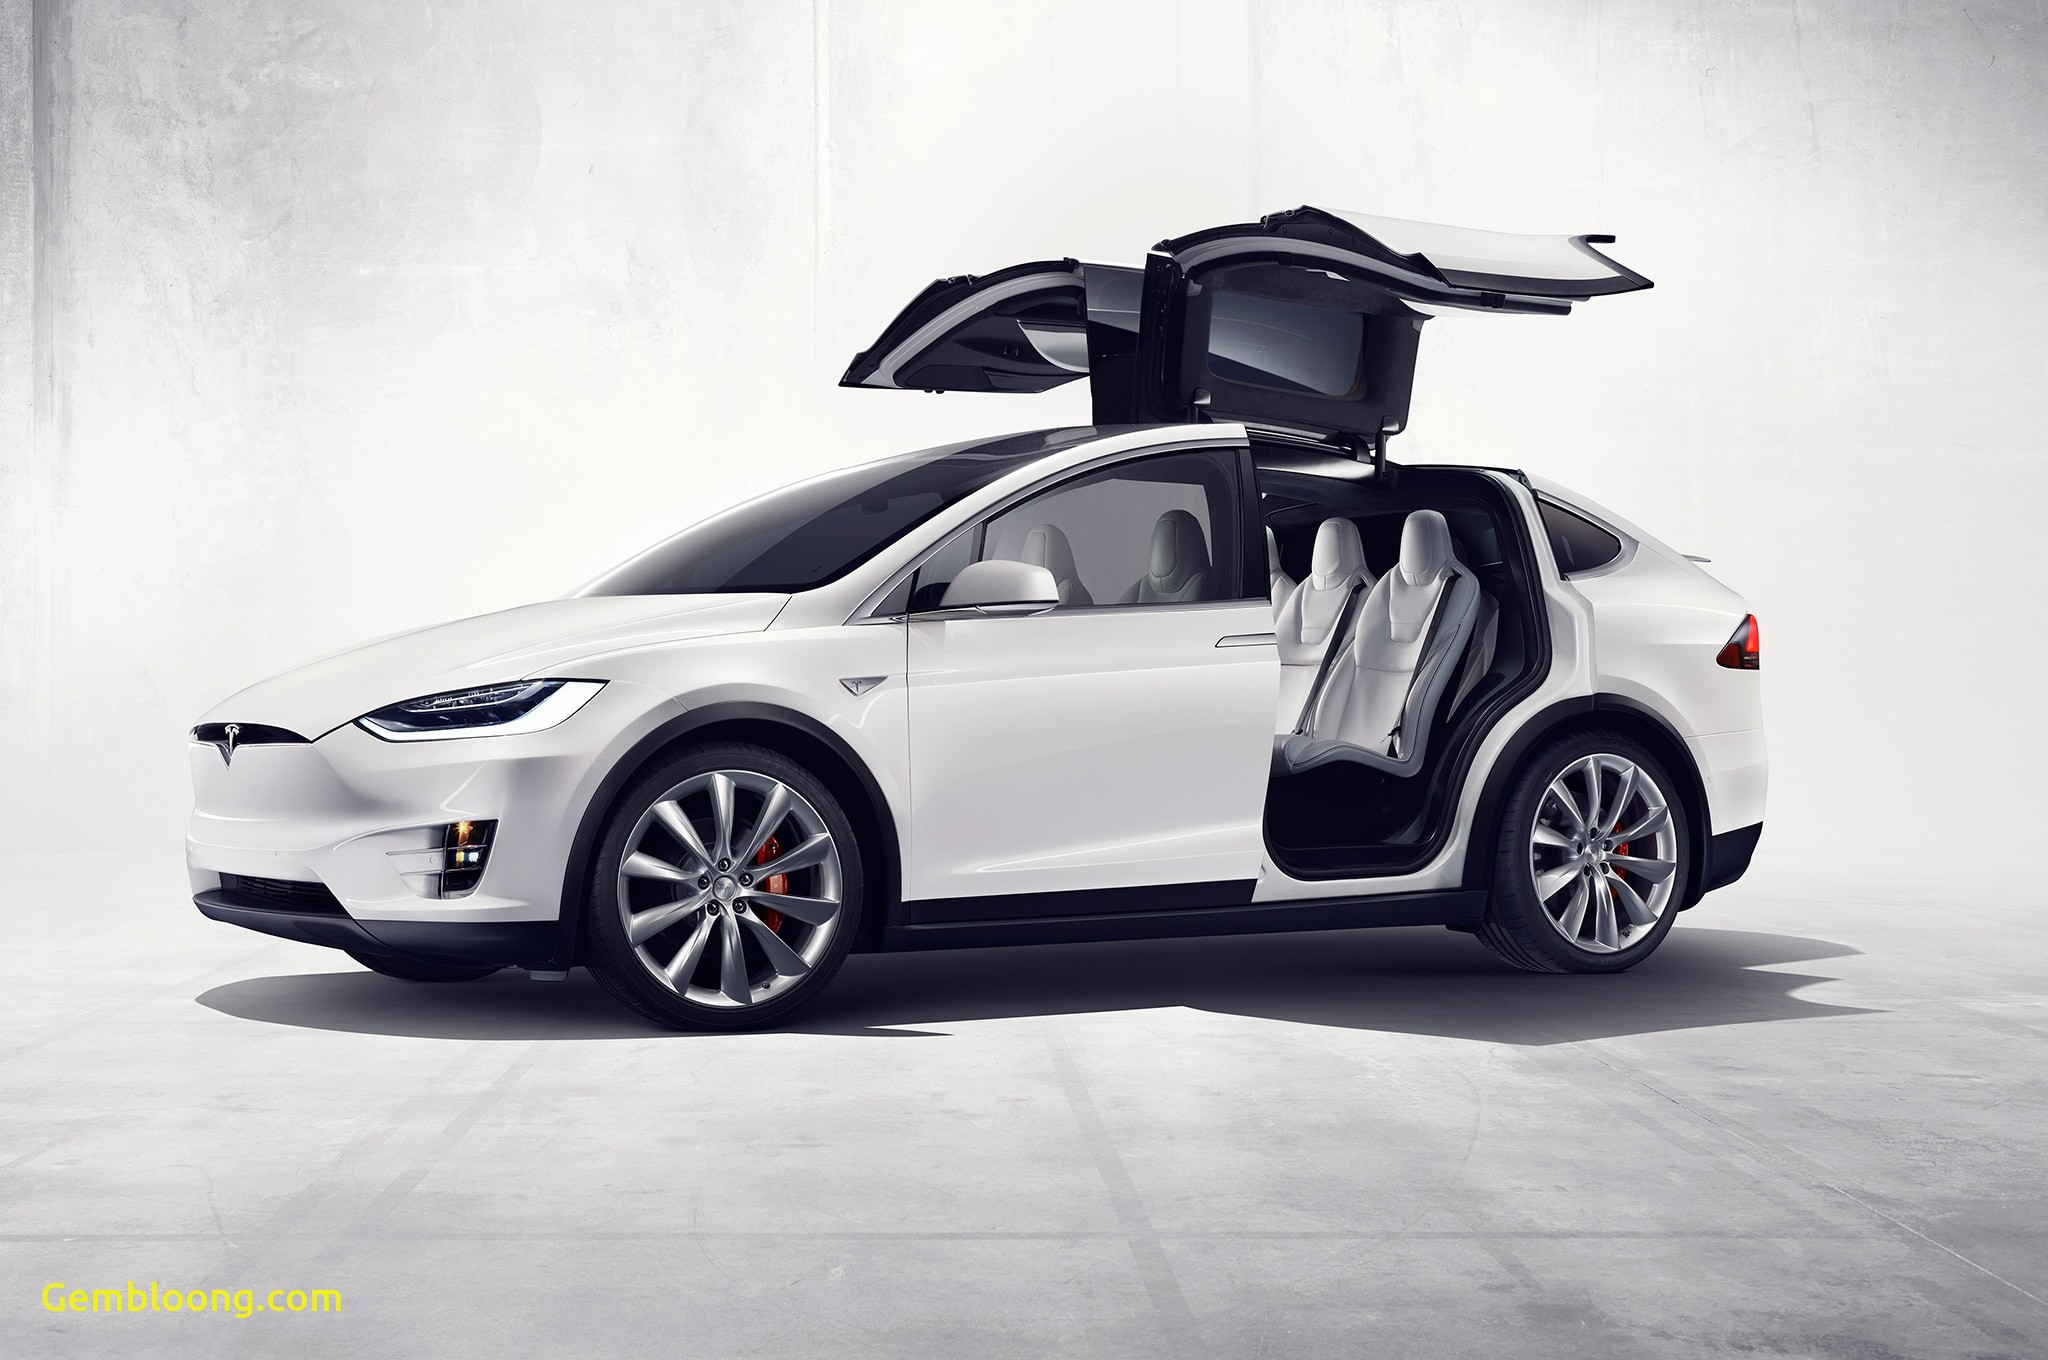 Tesla 2017 Fresh 2017 Tesla Model X Reviews Research Model X Prices & Specs Motor Trend Canada